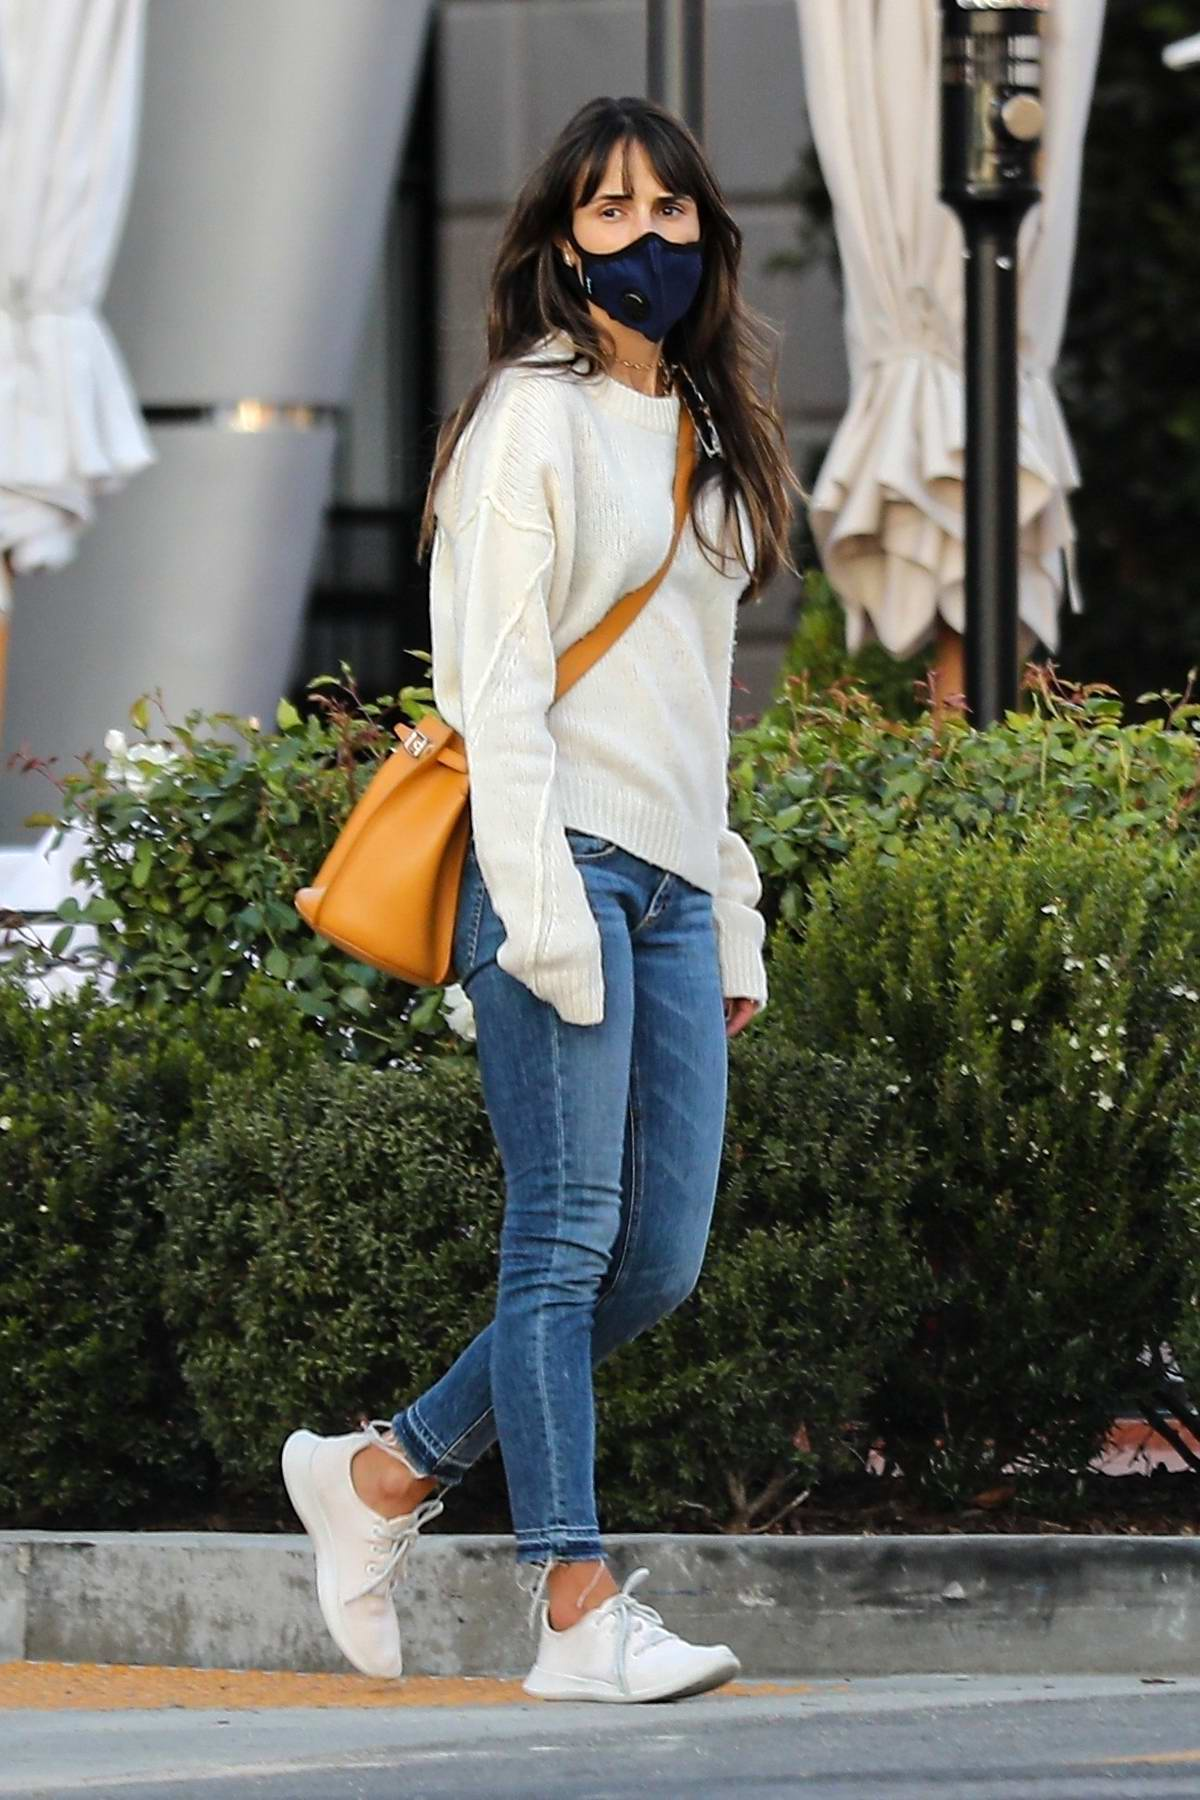 Jordana Brewster gets in some retail therapy at Reformation store in Pacific Palisades, California